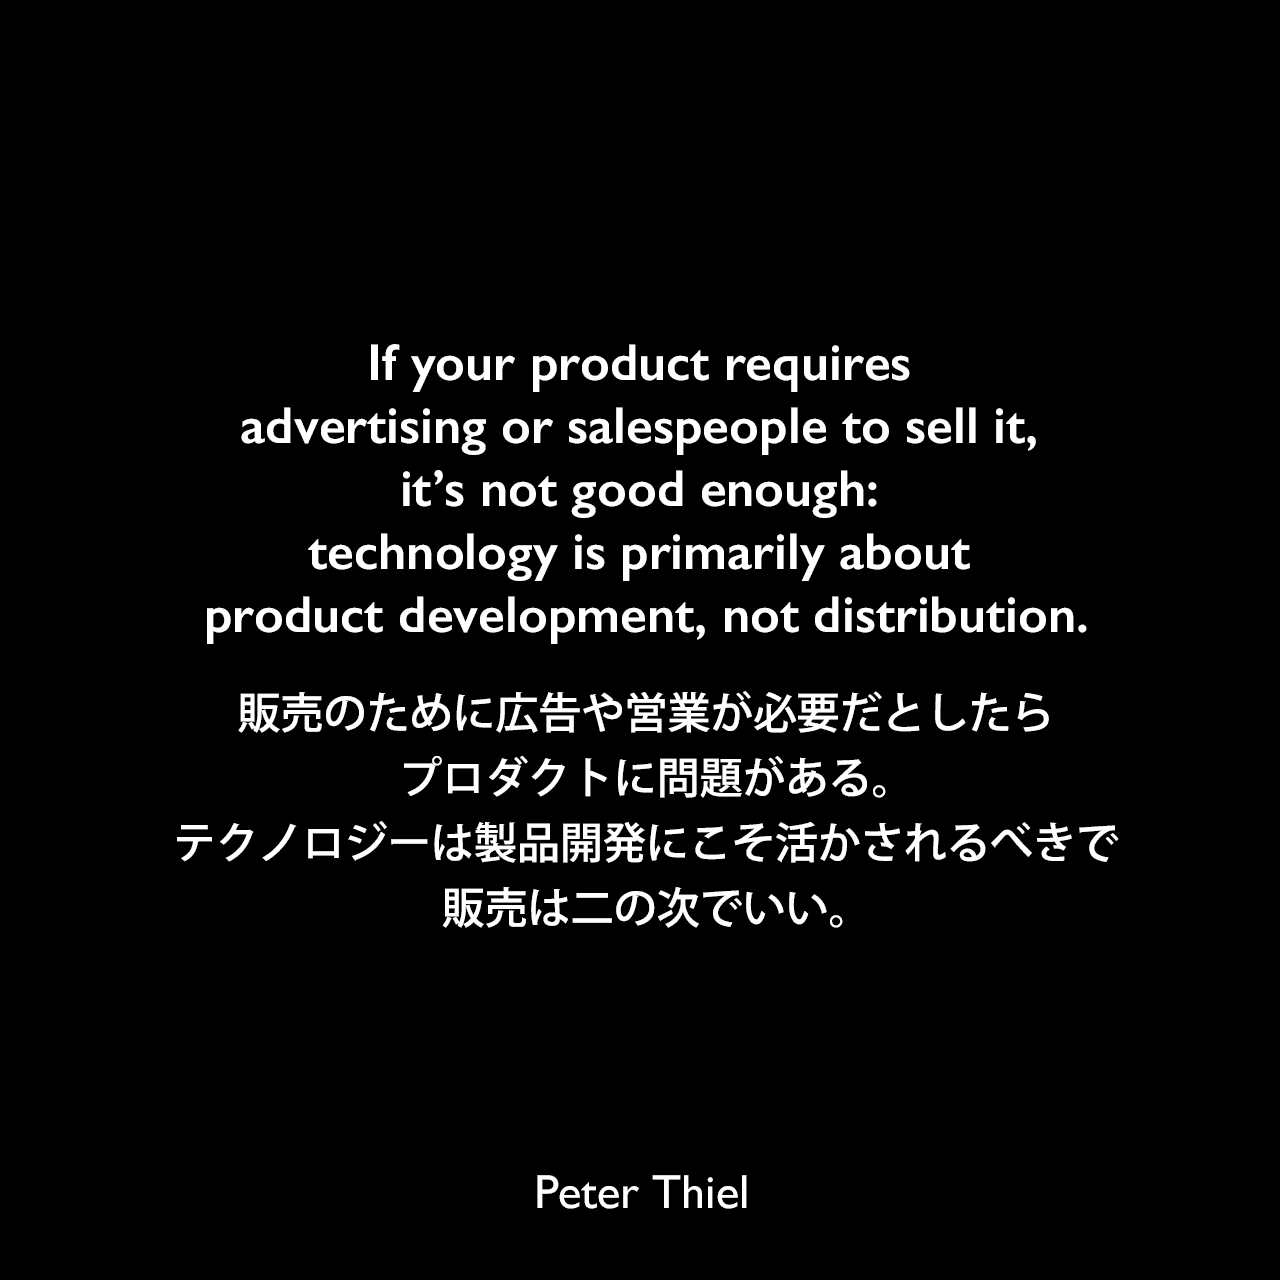 If your product requires advertising or salespeople to sell it, it's not good enough: technology is primarily about product development, not distribution.販売のために広告や営業が必要だとしたら、プロダクトに問題がある。テクノロジーは製品開発にこそ活かされるべきで、販売は二の次でいい。- ピーター・ティールの本「Zero to One」よりPeter Thiel